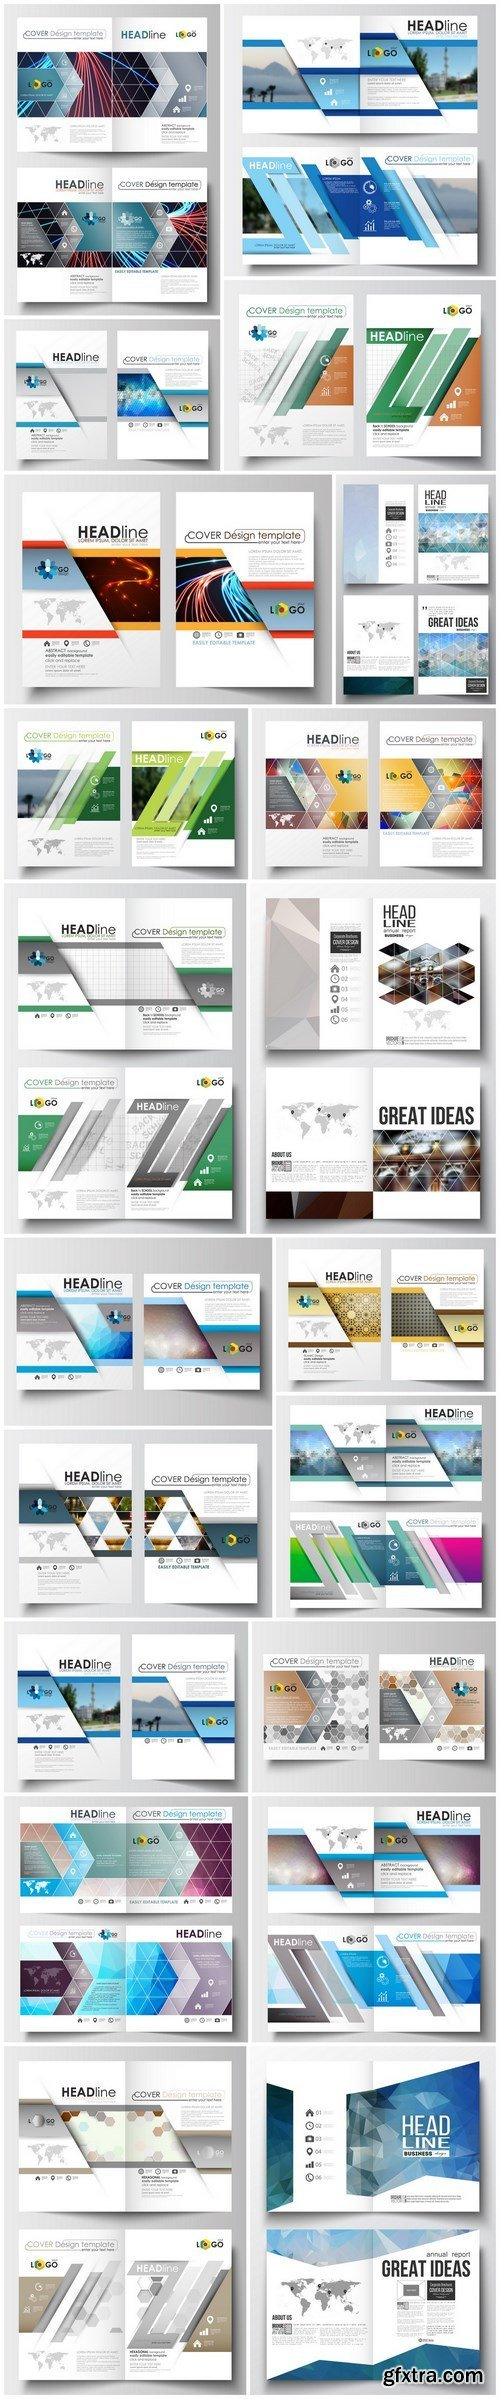 Cover design template, magazine, flyer, booklet or annual report 4 - 20xEPS Vector Stock